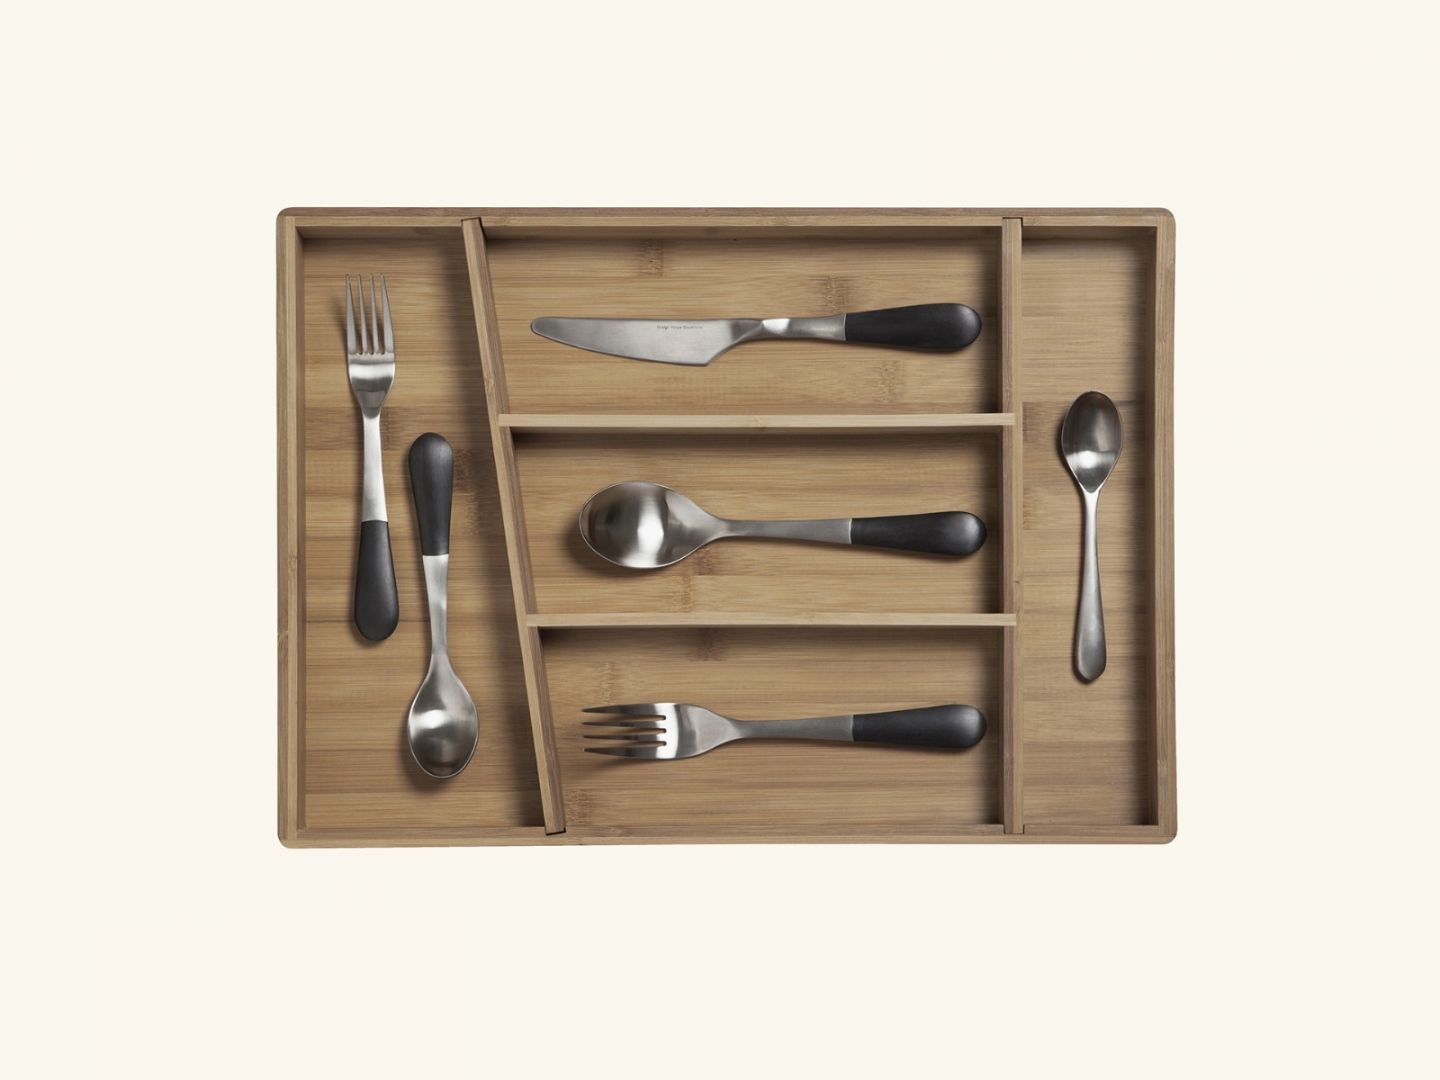 Stockholm cutlery tray Bamboo